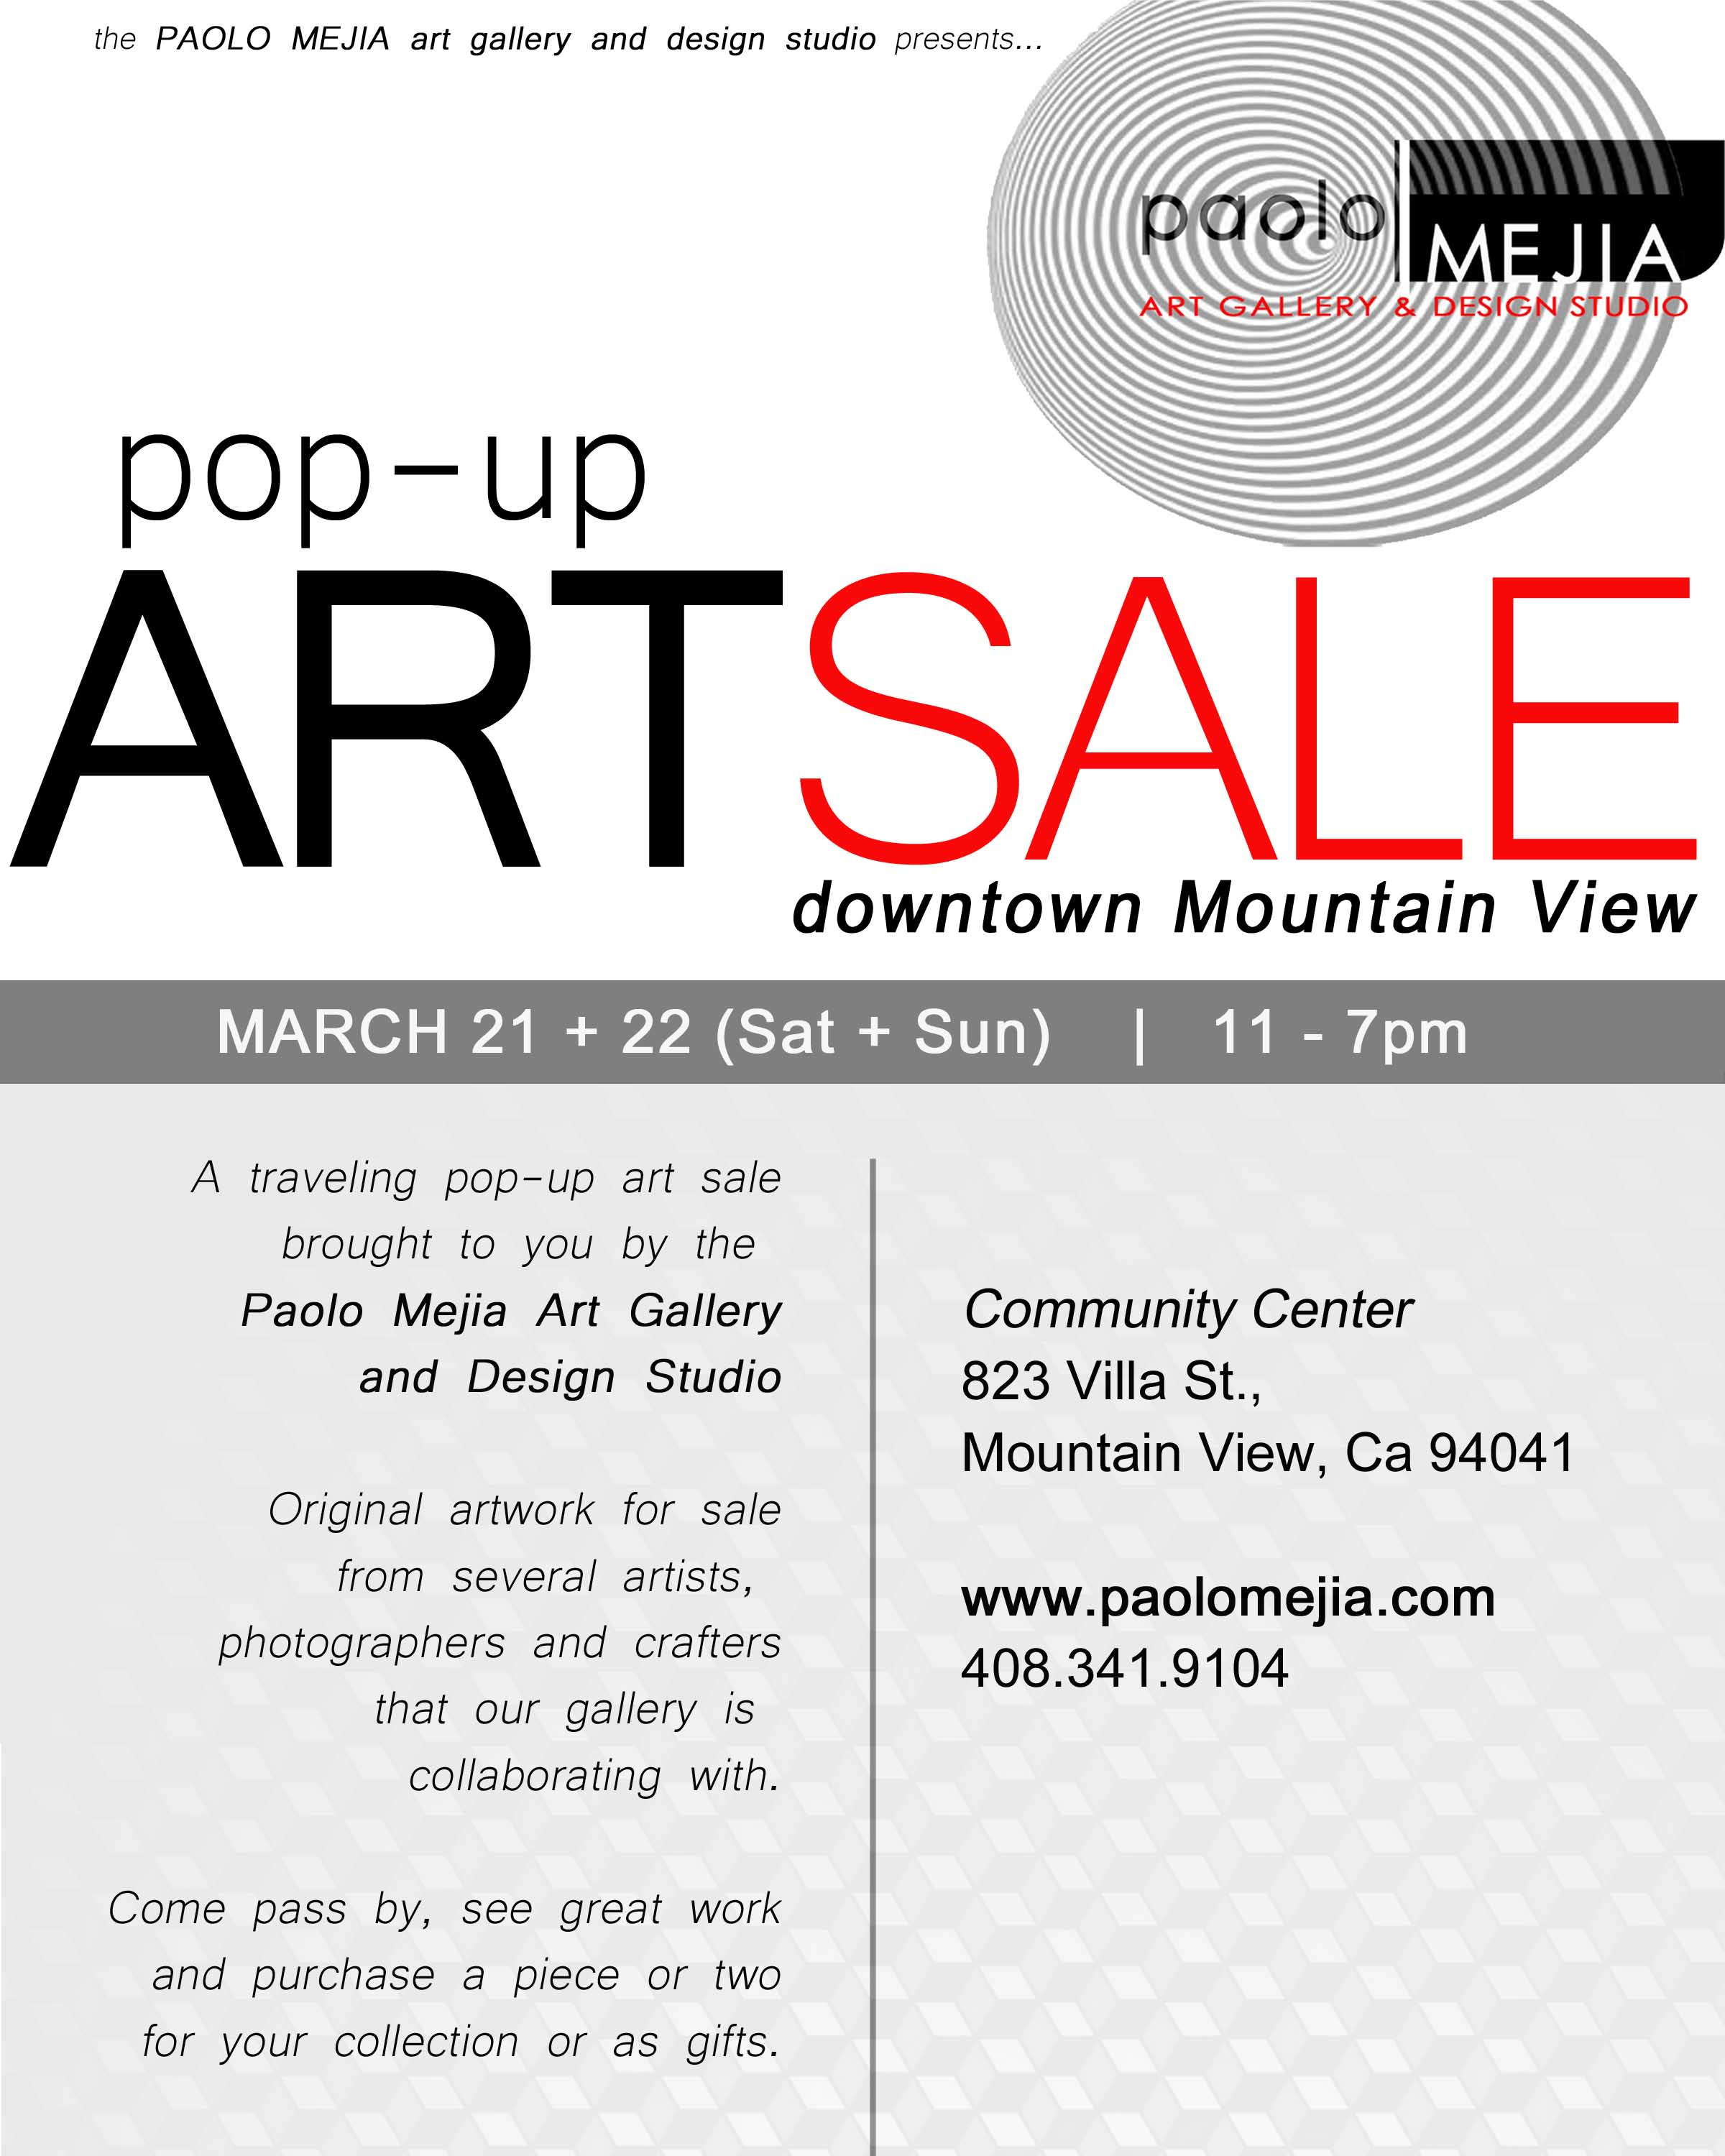 art sale - mt view